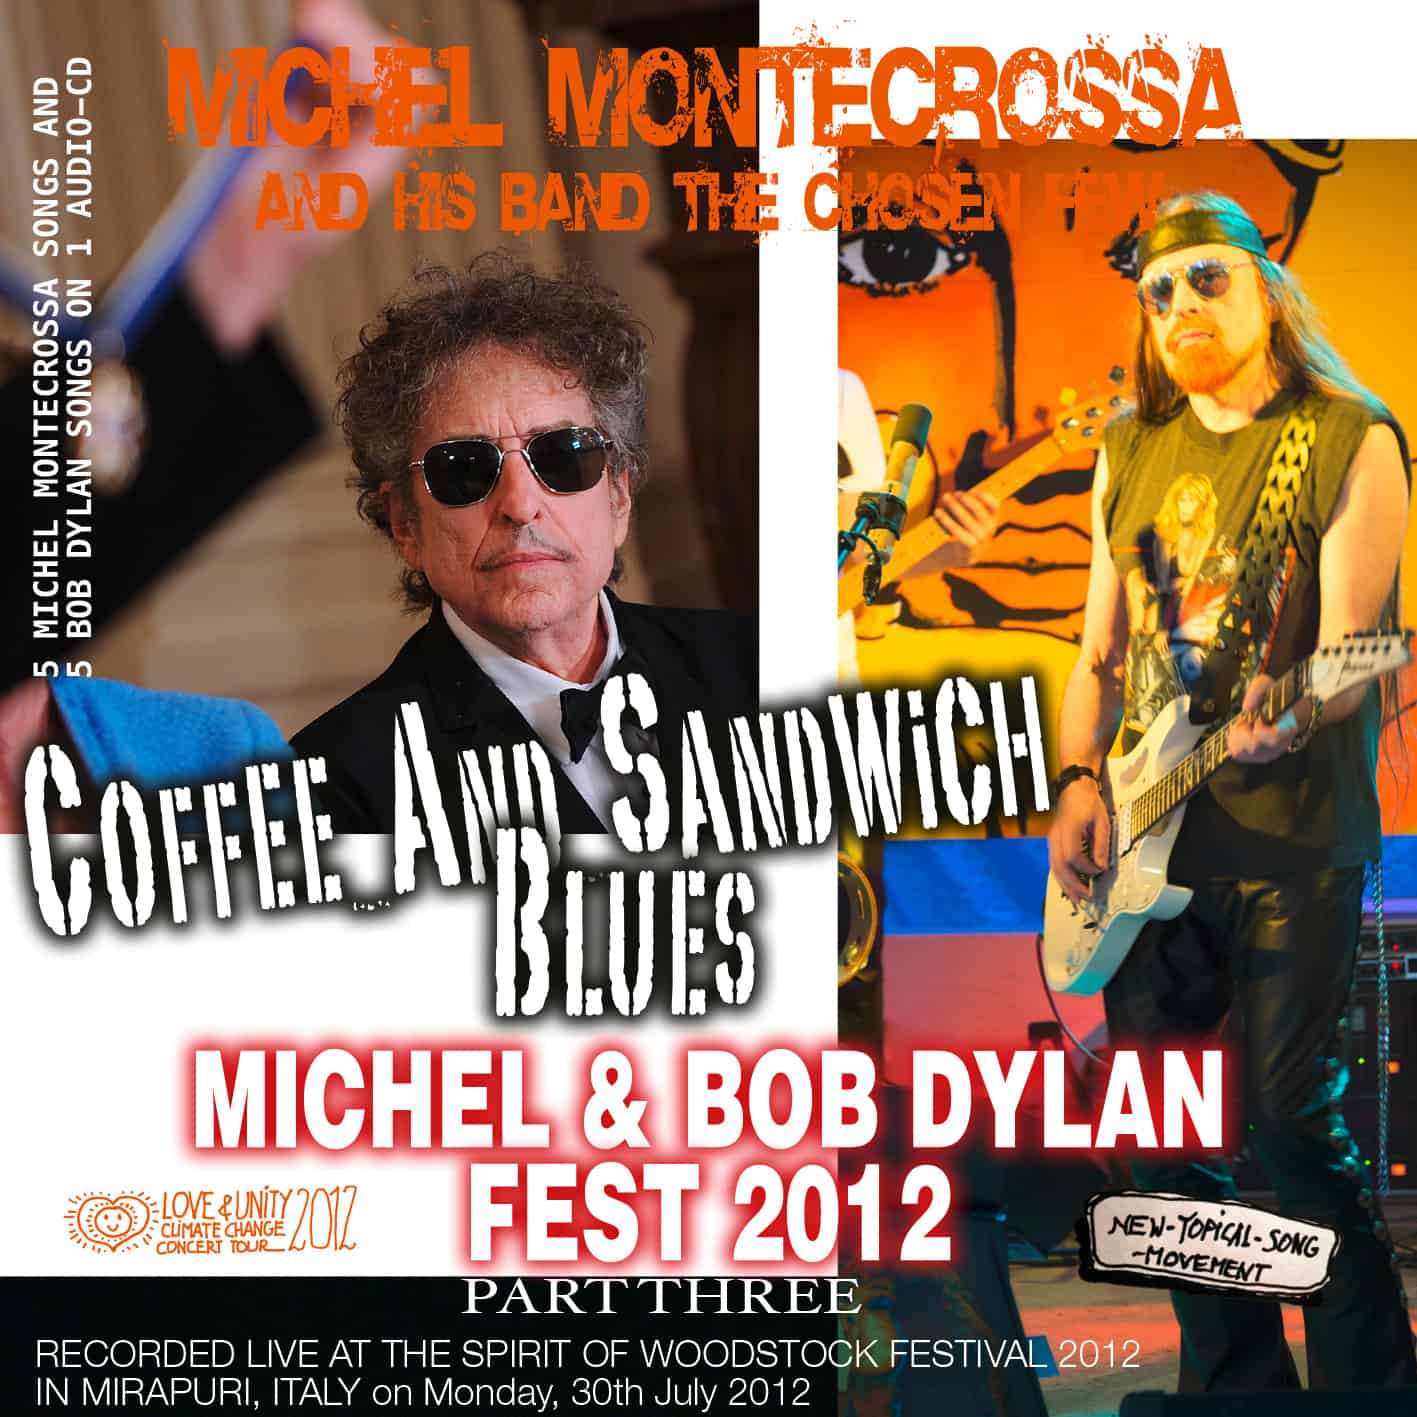 Coffee and Sandwich Blues - Part three of Michel Montecrossa's Michel & Bob Dylan Fest 2012